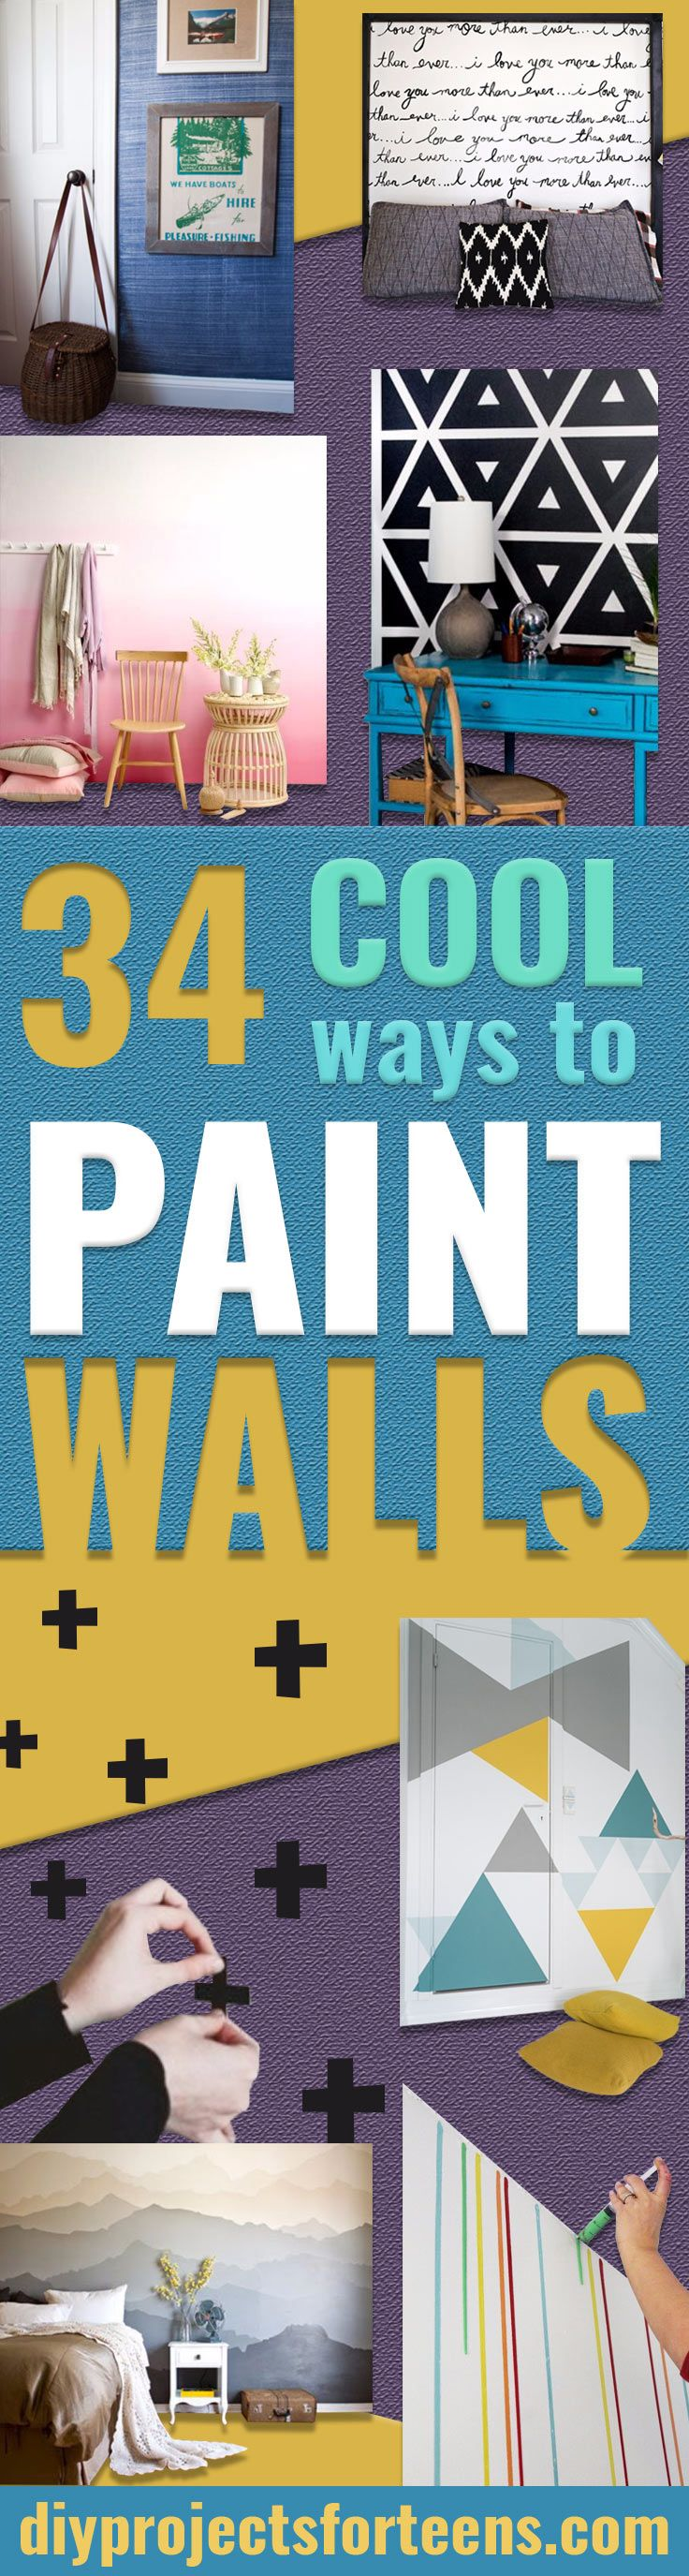 best 25 creative wall painting ideas on pinterest stencil 34 cool ways to paint walls